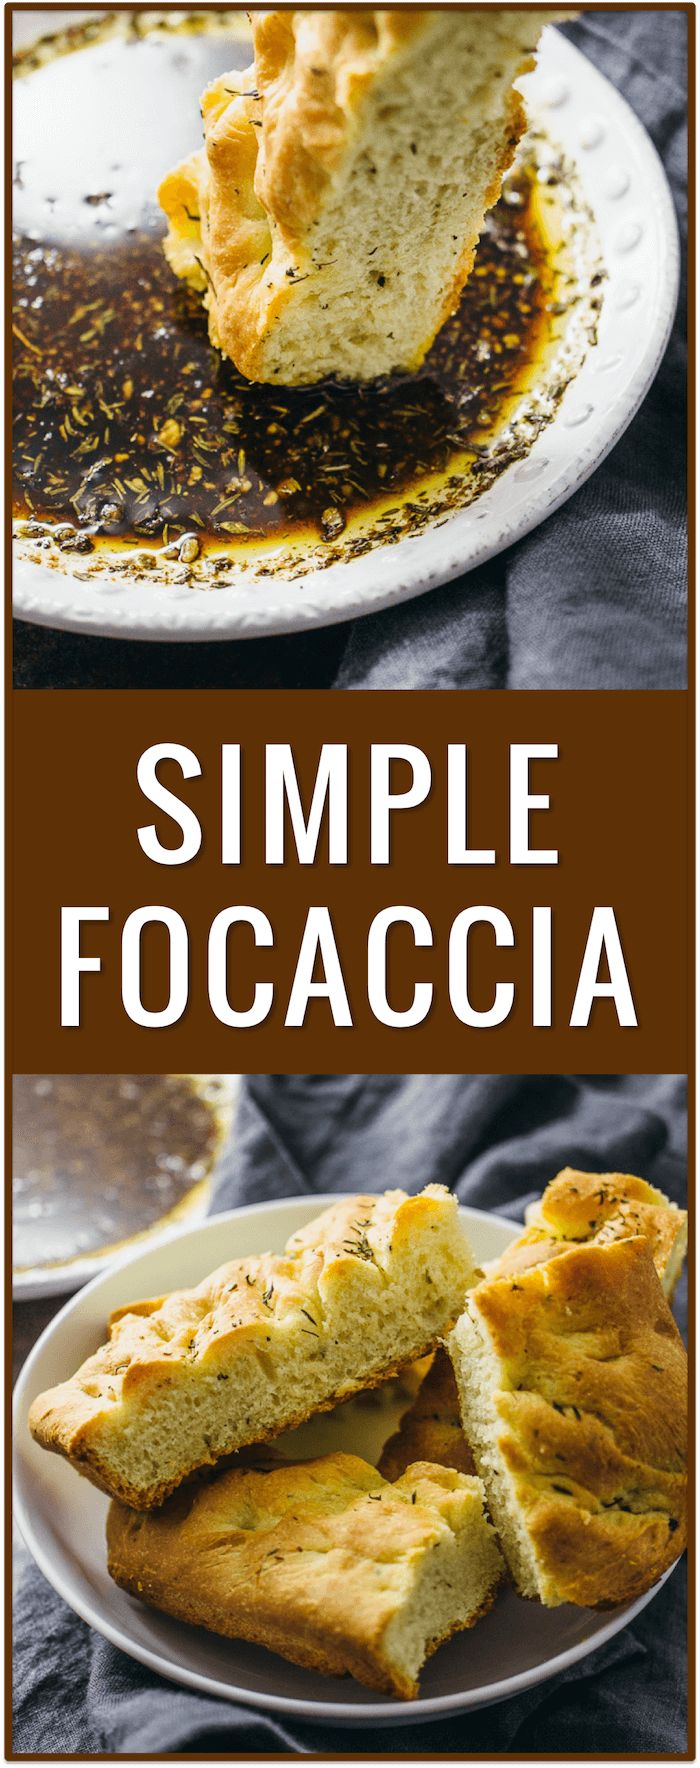 Simple focaccia bread, Italian dipping oil sauce, appetizer bread, baking, dough, easy, simple, recipe, vegan, vegetarian, restaurant style, spices, toppings via @savory_tooth